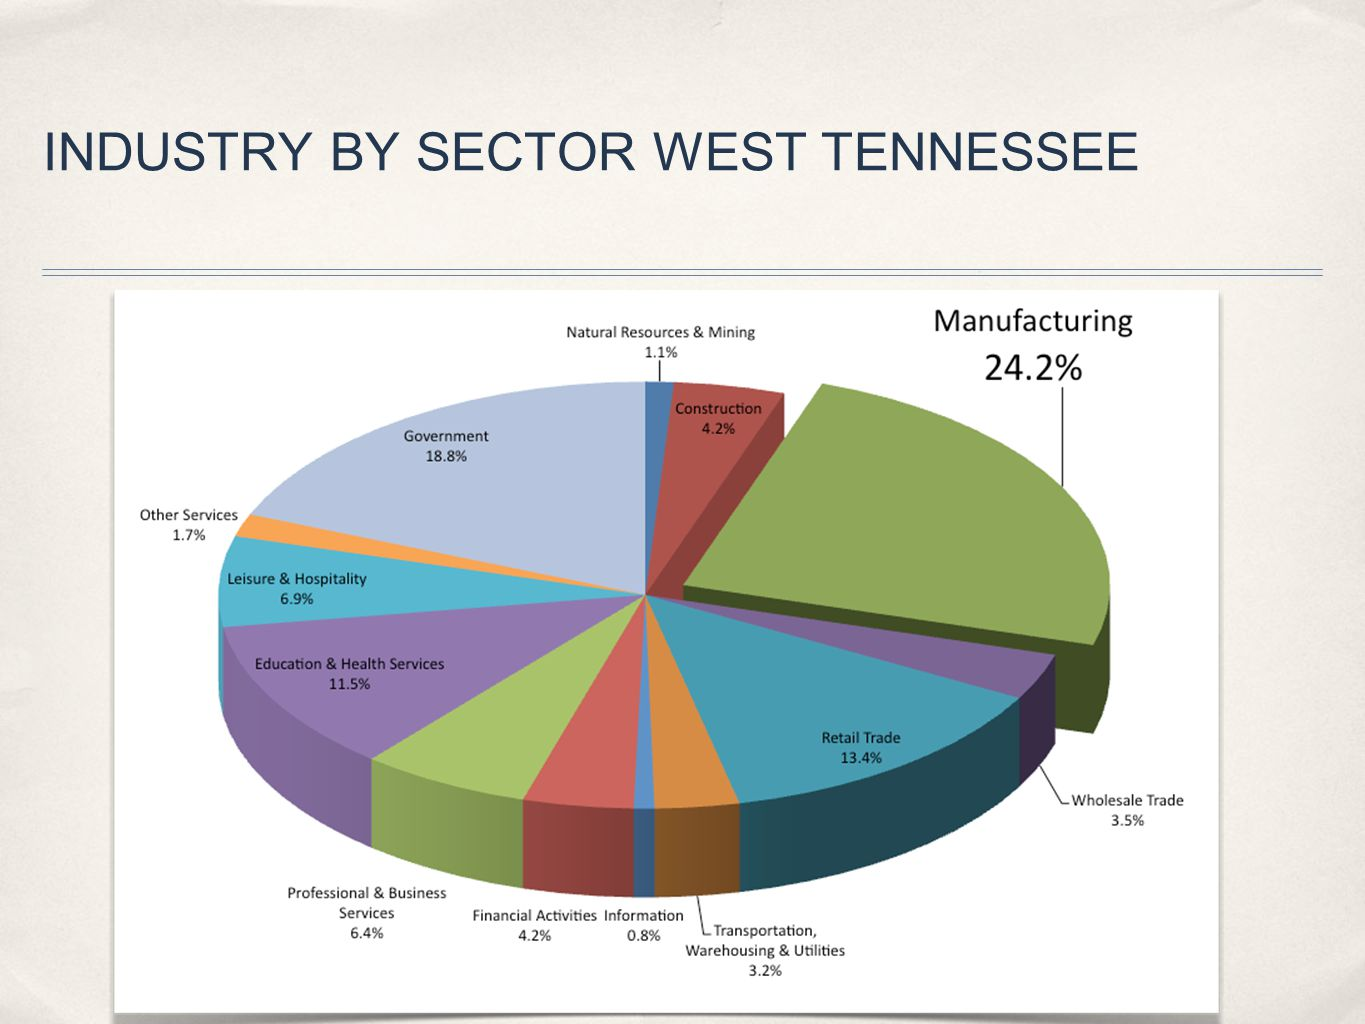 INDUSTRY BY SECTOR WEST TENNESSEE